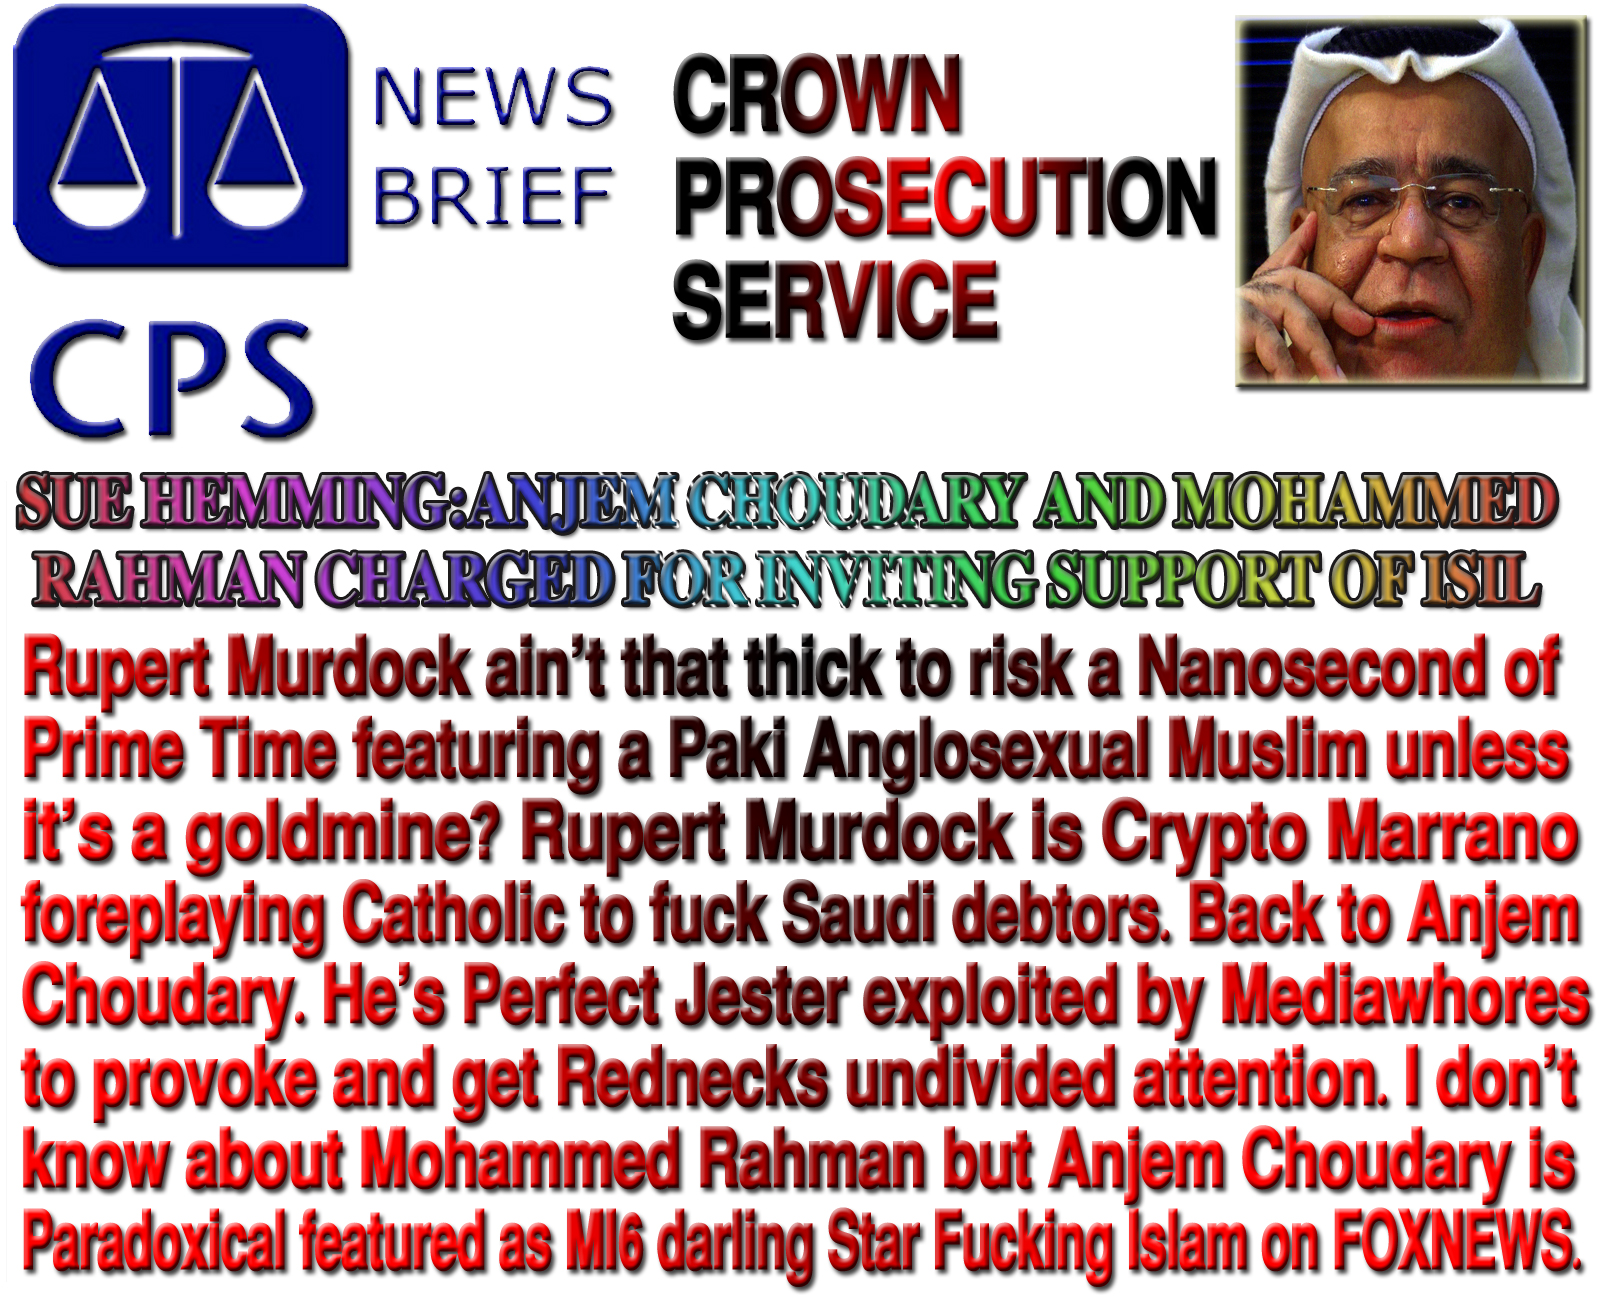 I don't know about Mohammed Rahman but Anjem Choudary is Paradoxical featured as MI6 darling Star Fucking Islam on FOXNEWS.Rupert Murdock ain't that thick to risk a Nanosecond of Prime Time featuring a Paki Anglosexual Muslim unless it's a goldmine? Rupert Murdock is Crypto Marrano foreplaying Catholic to fuck Saudi debtors. Back to Anjem Choudary. He's Perfect Jester exploited by Mediawhores to provoke and get Rednecks undivided attention.